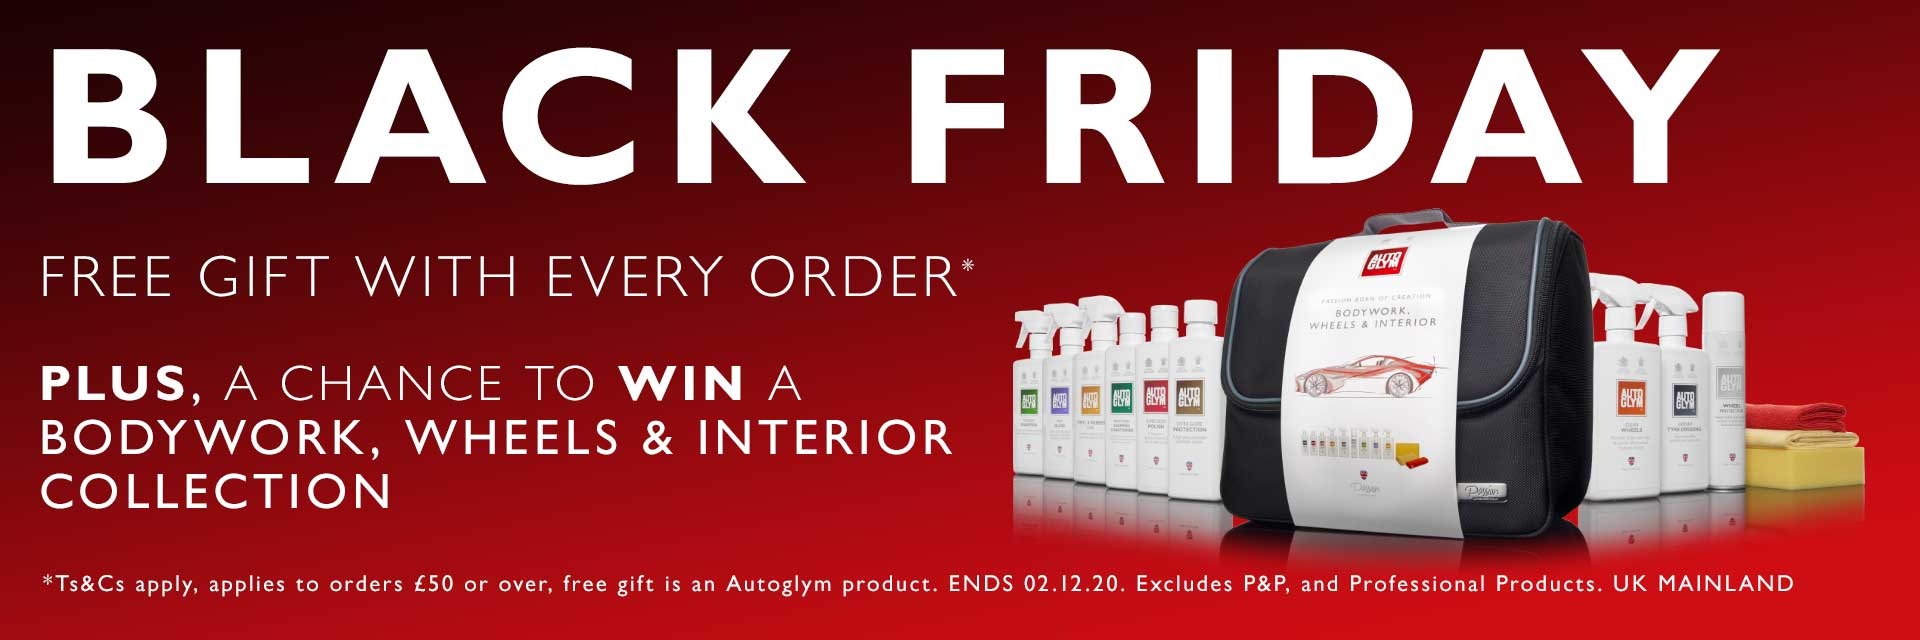 Black Friday Offer - Spend over £50 and get a free Anti-Bacterial Multi-Surface Sanitiser